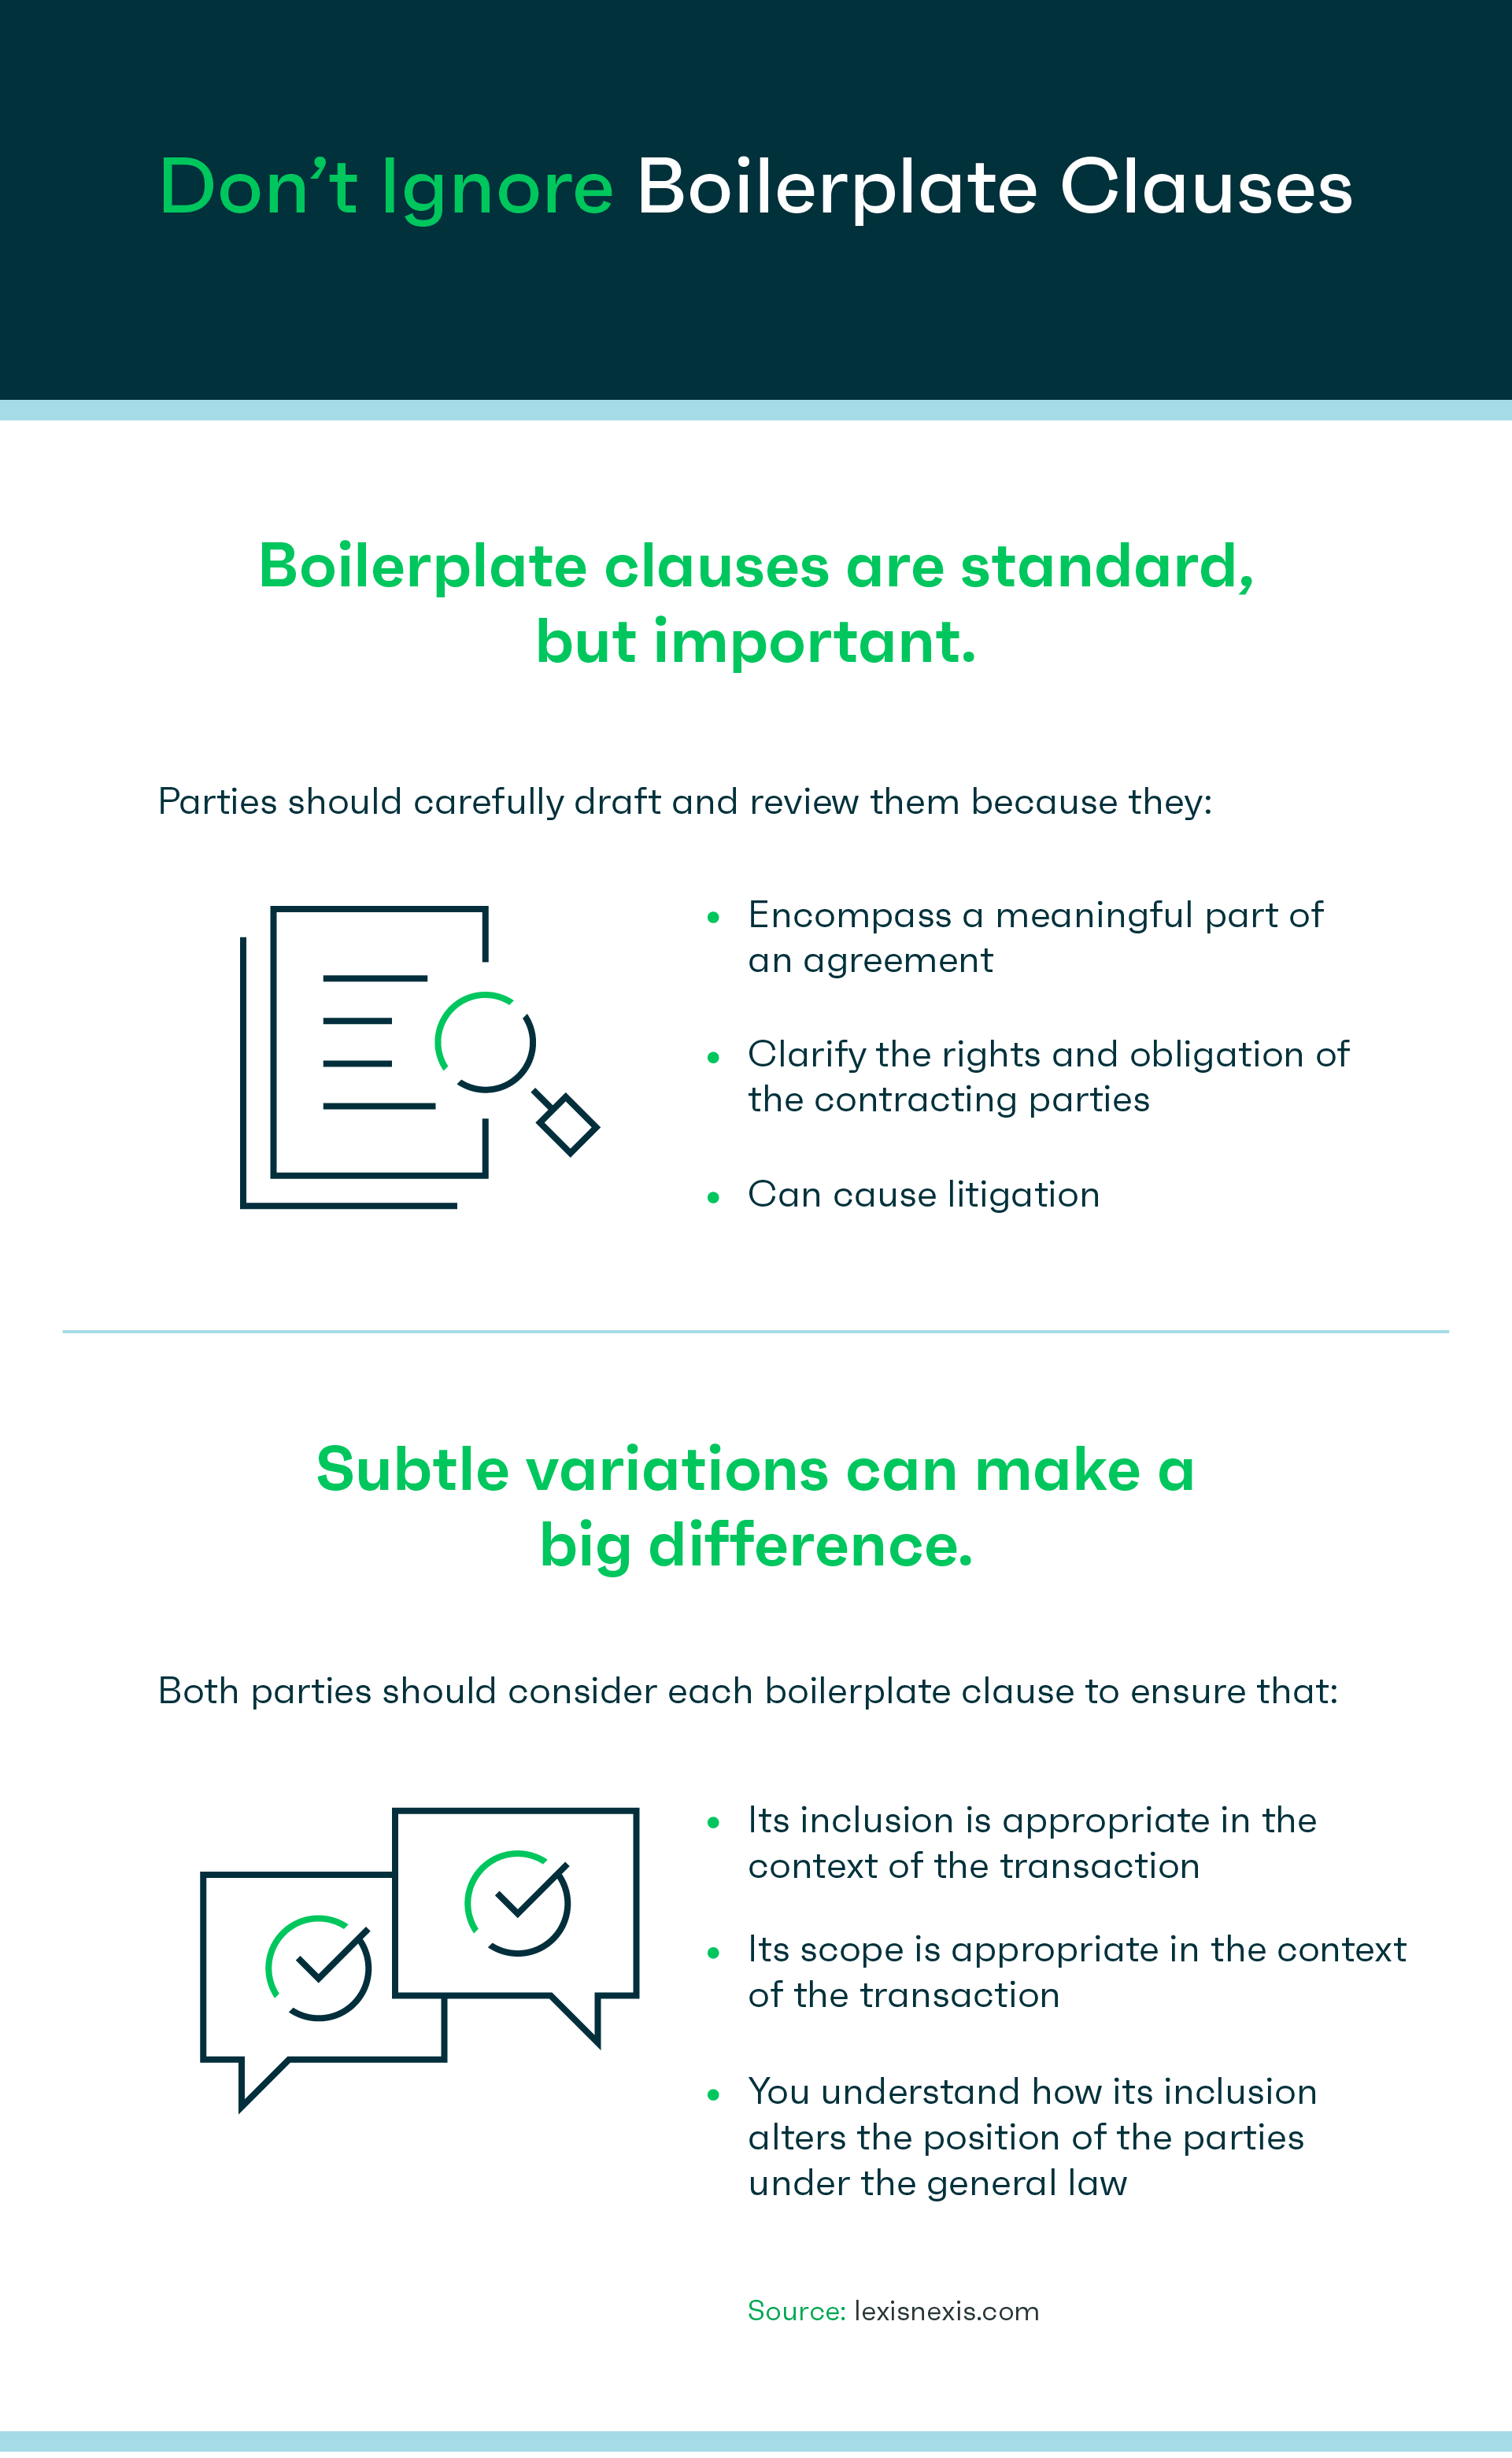 Don't ignore boilerplate clauses - infographic